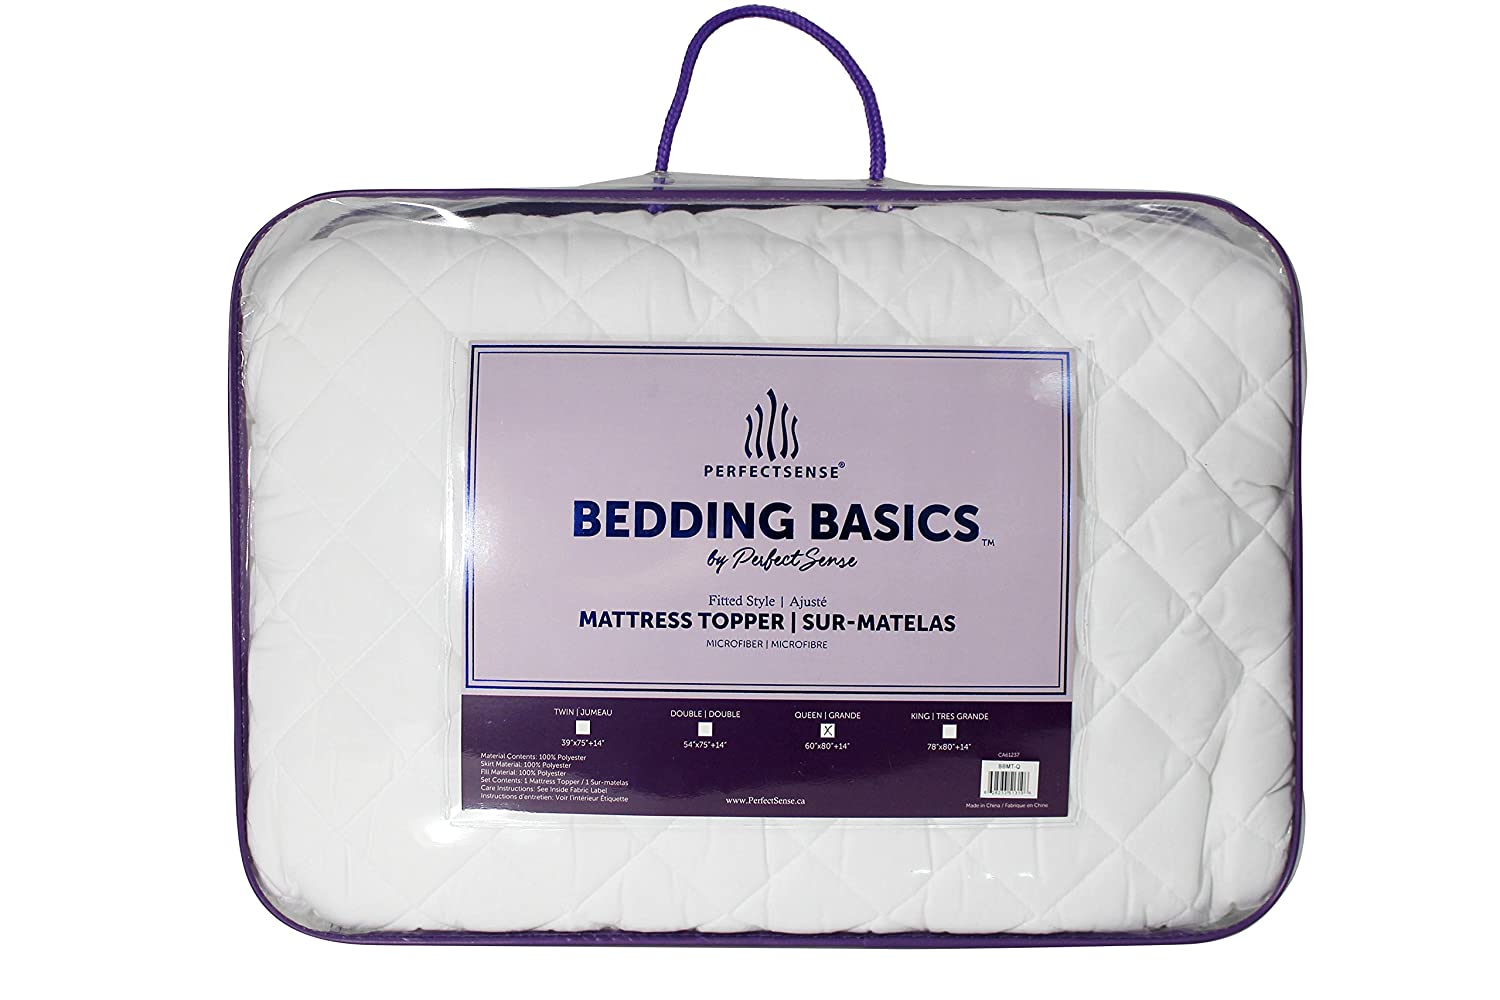 "Mattress Pad 1 Piece PerfectSense Basics Luxury Soft Breathable Hypoallergenic Quilted Mattress Pad Double Fill Down Alternative Mattress Cover 18"" Deep Pocket Fitted Style Secure Fit All Season Wrinkle Free & Machine Washable Bed Mattress Pad - by Per"